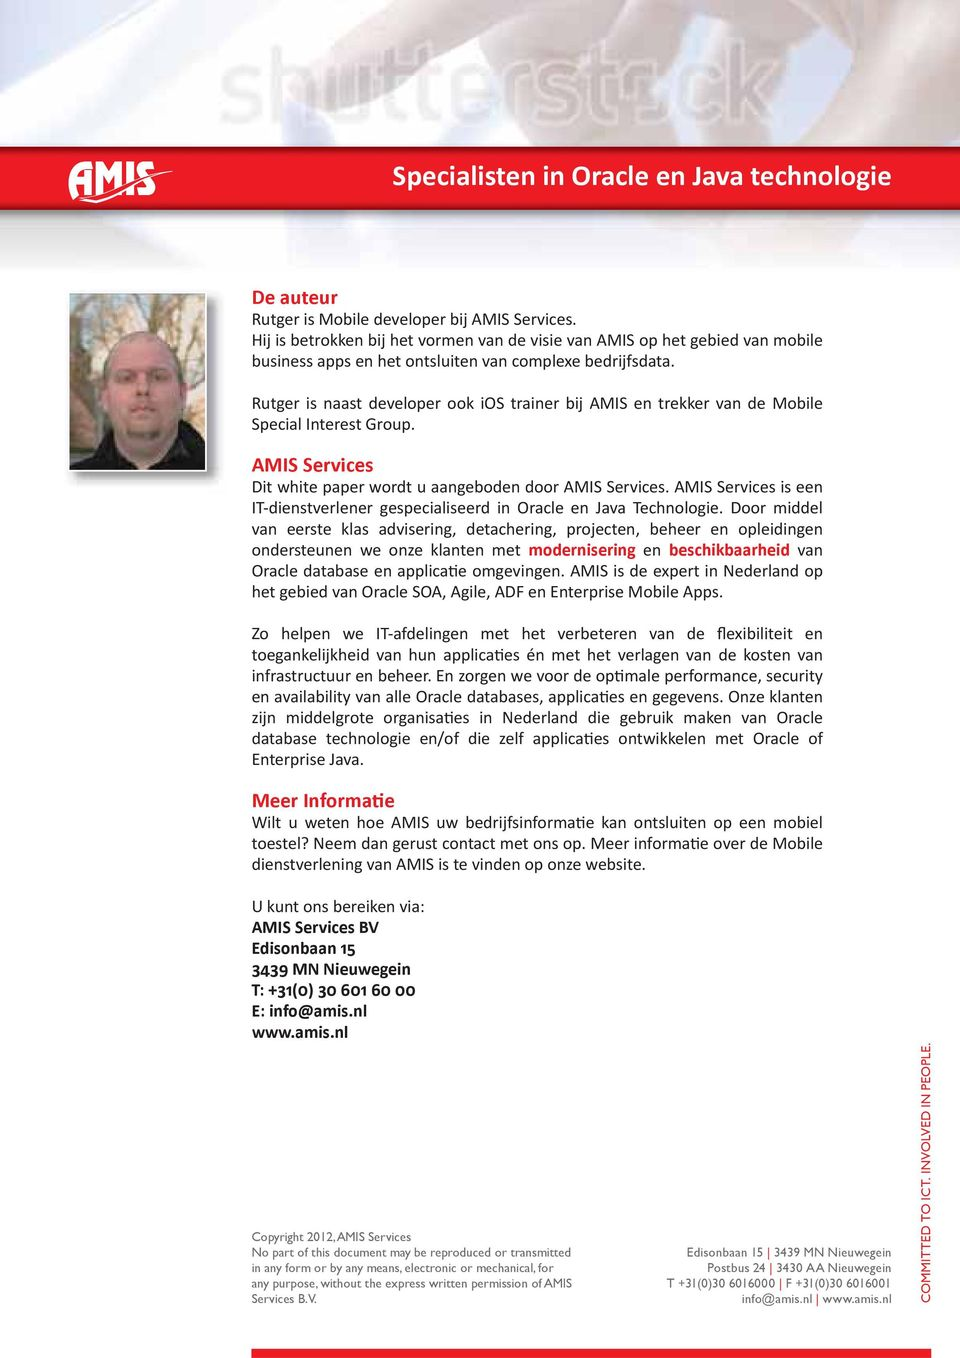 AMIS Services is een IT-dienstverlener gespecialiseerd in Oracle en Java Technologie.